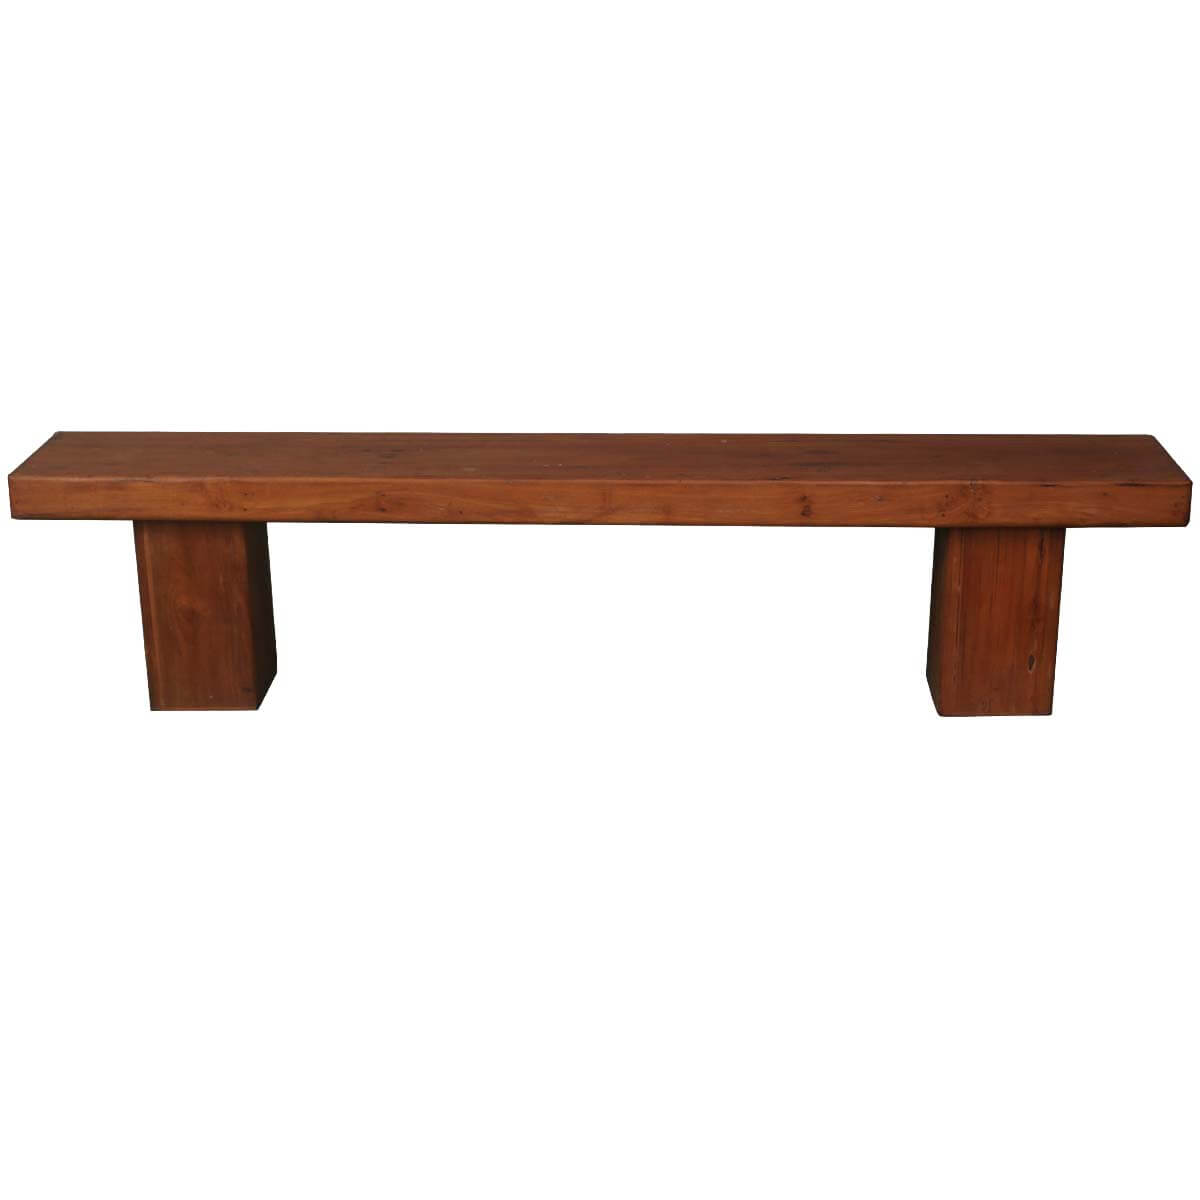 Contemporary solid wood 79 long dining bench Oak bench